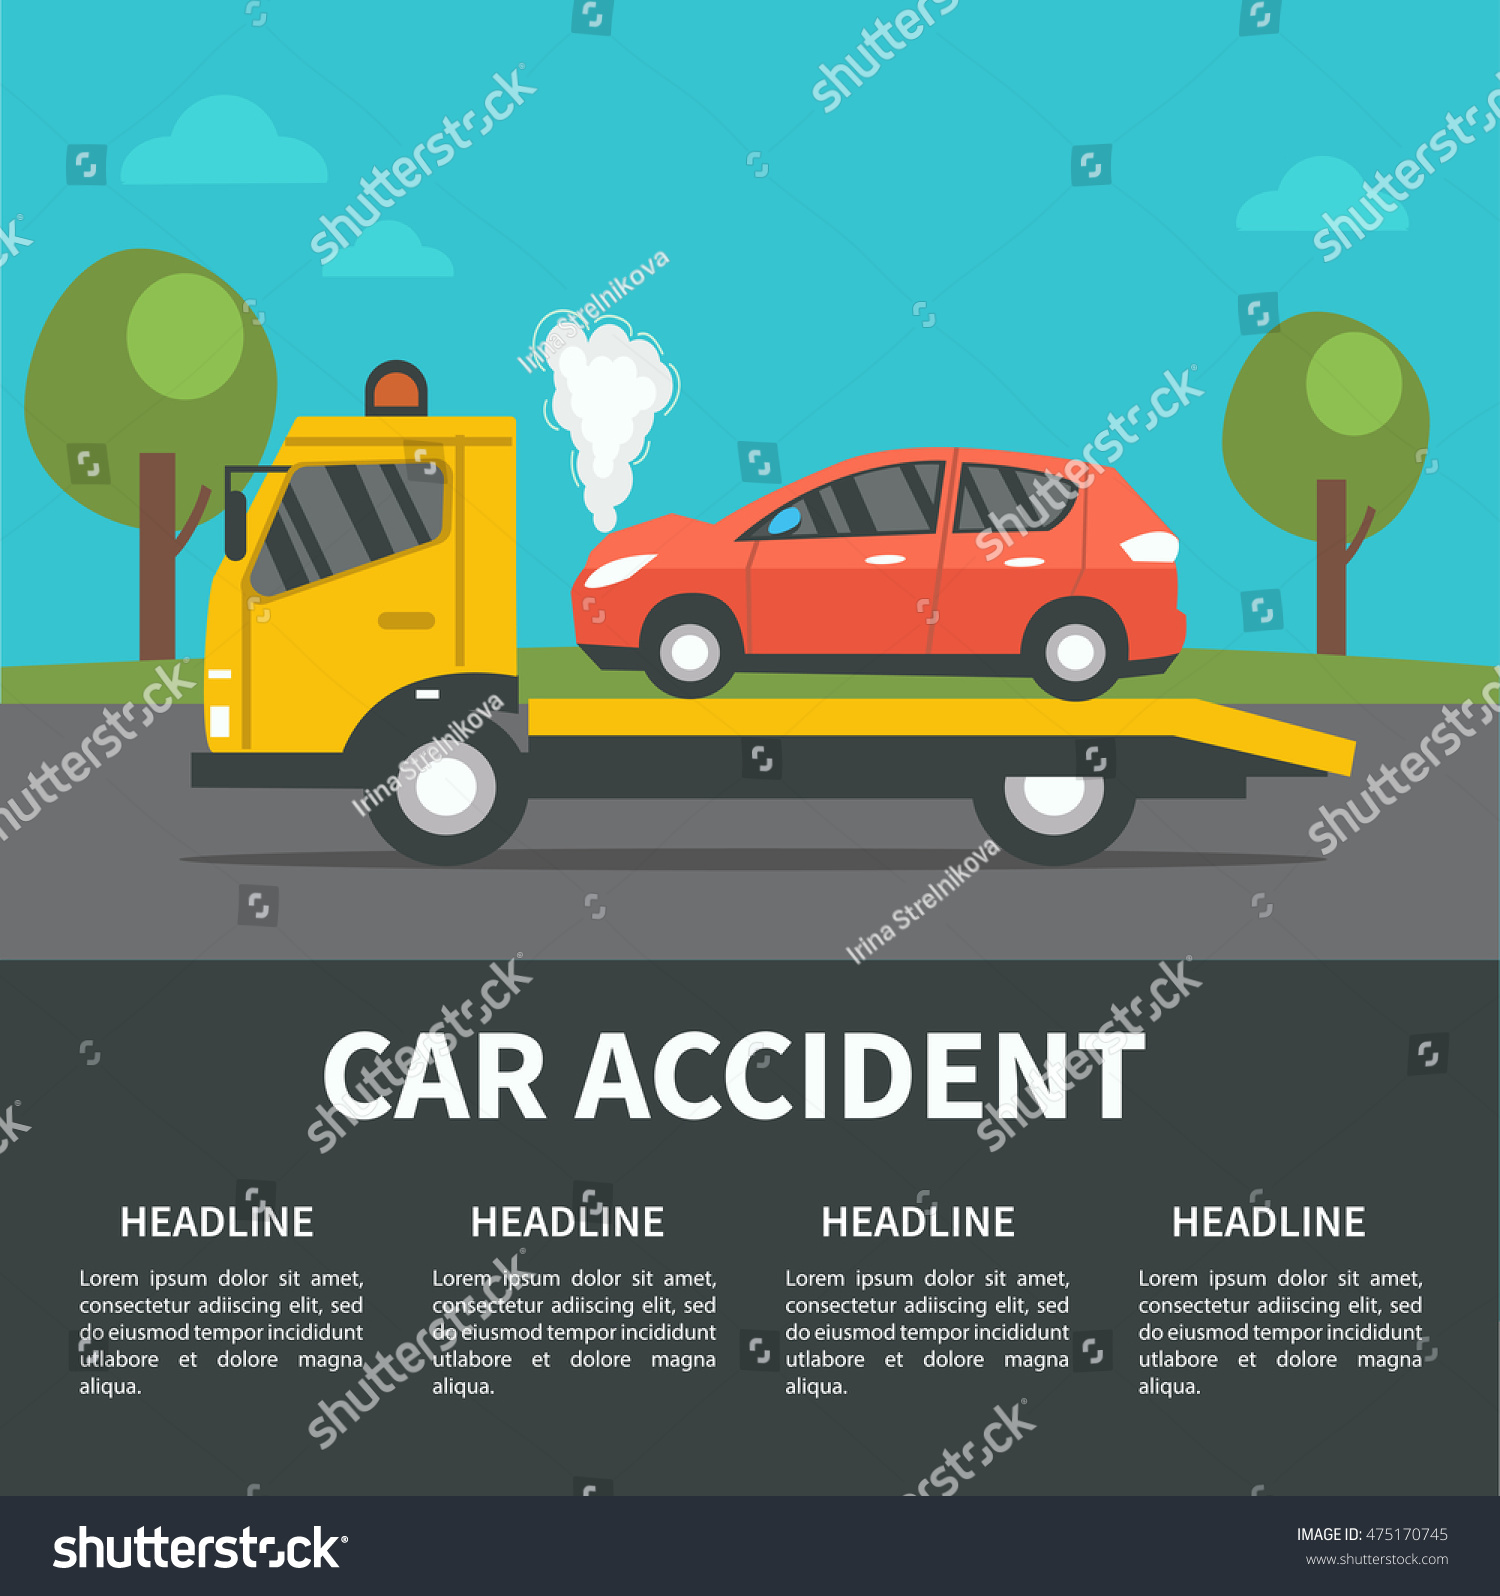 Car Accident Concept Illustration Vector Infographic Stock